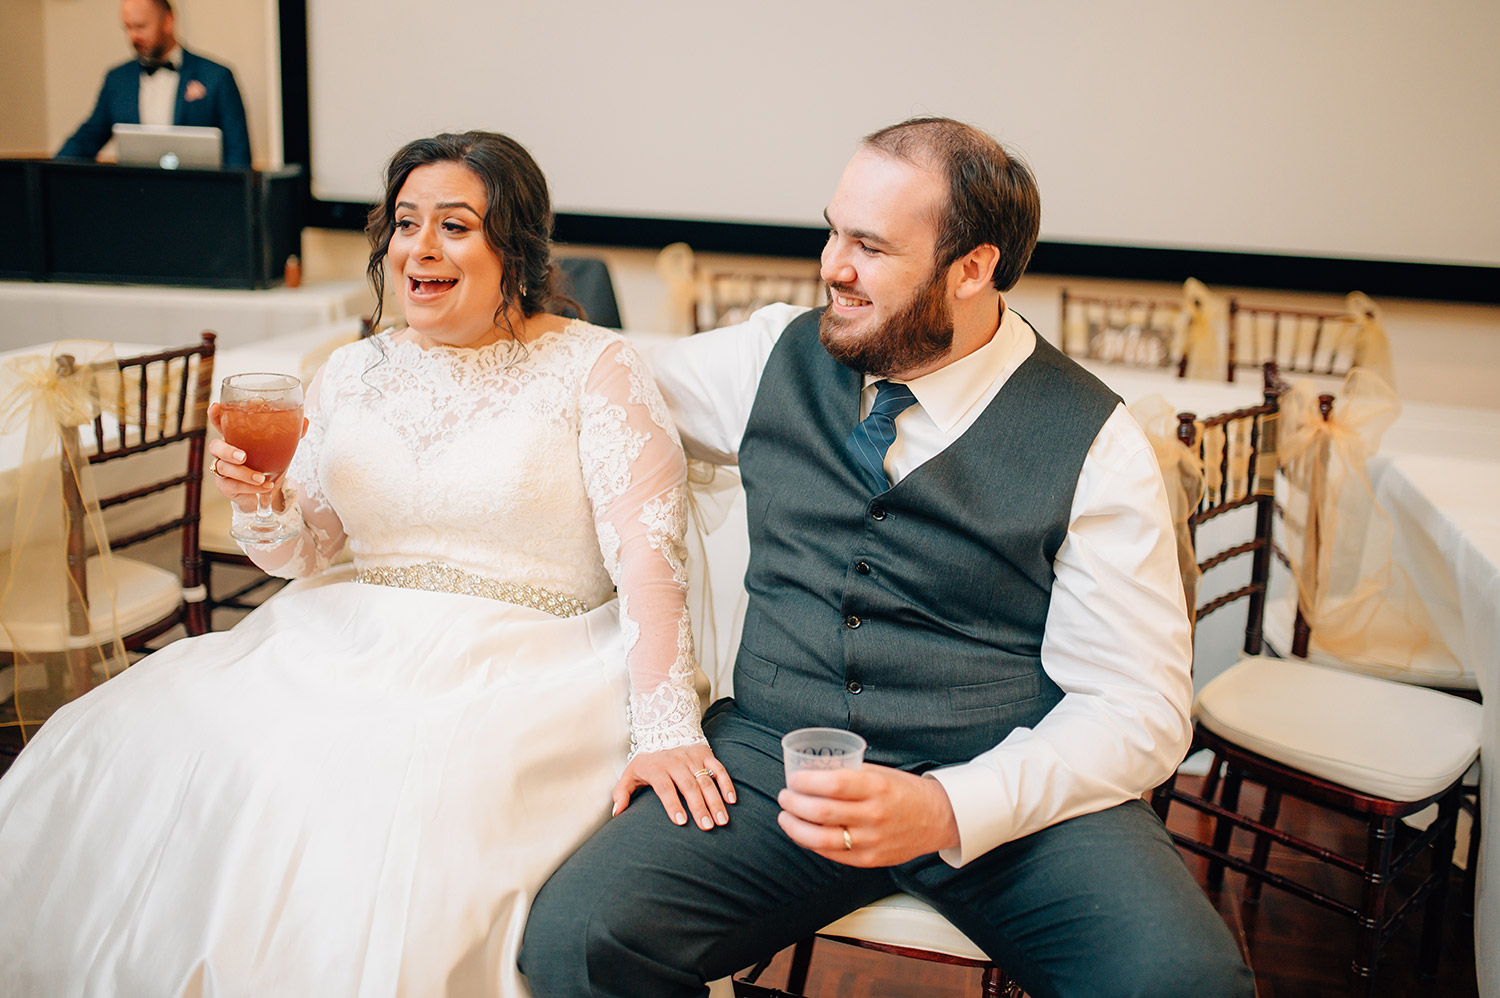 bride and groom react to toasts at their wedding reception